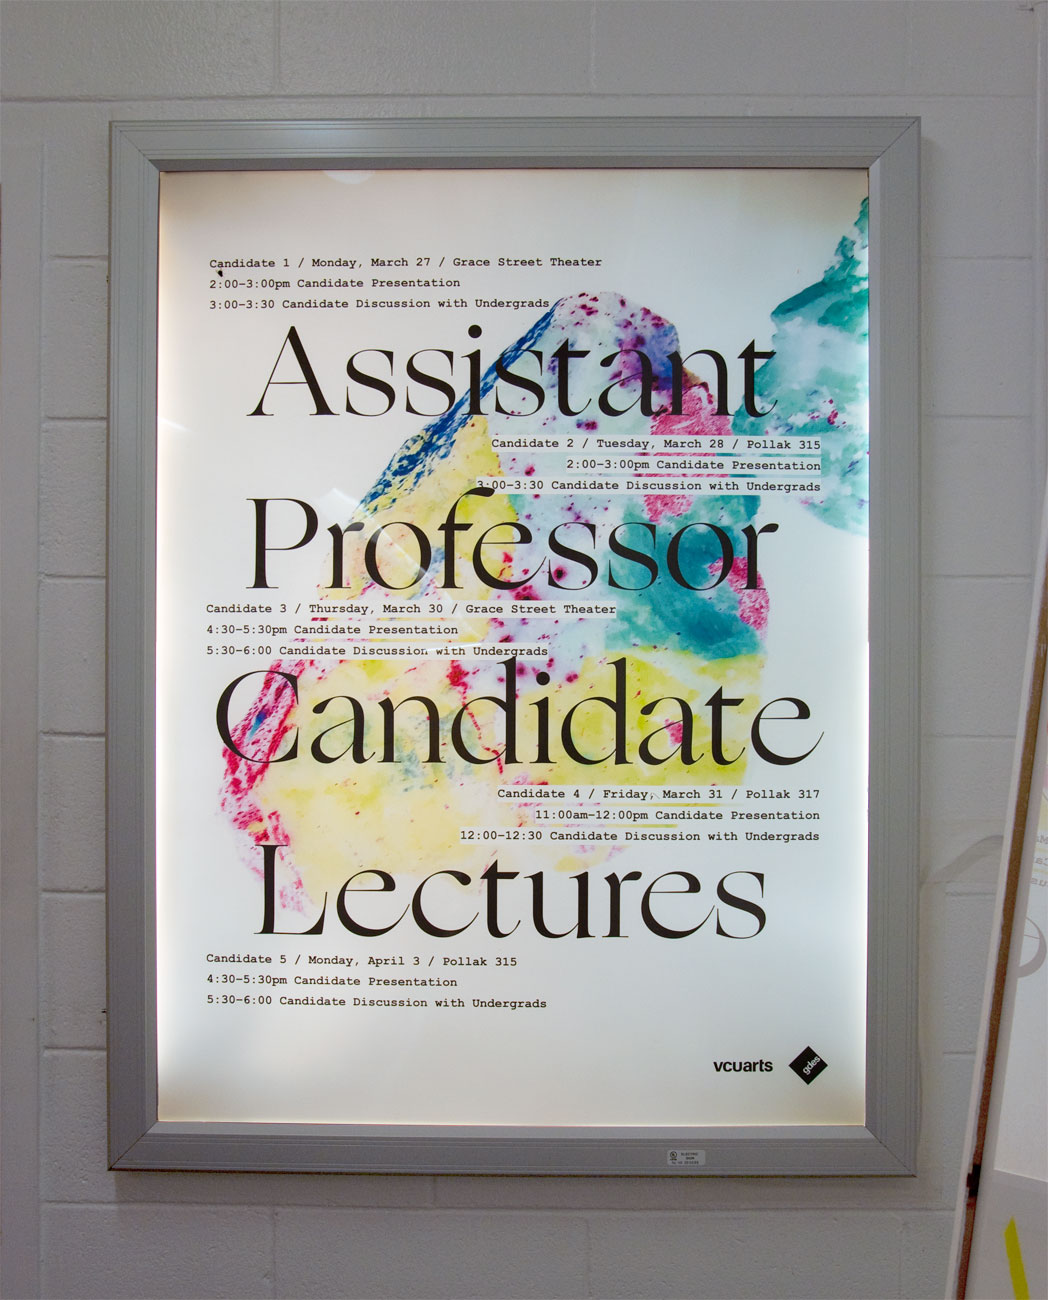 VCU Assistant Professor Candidate lectures poster, designed by Drew Sisk, VCU MFA